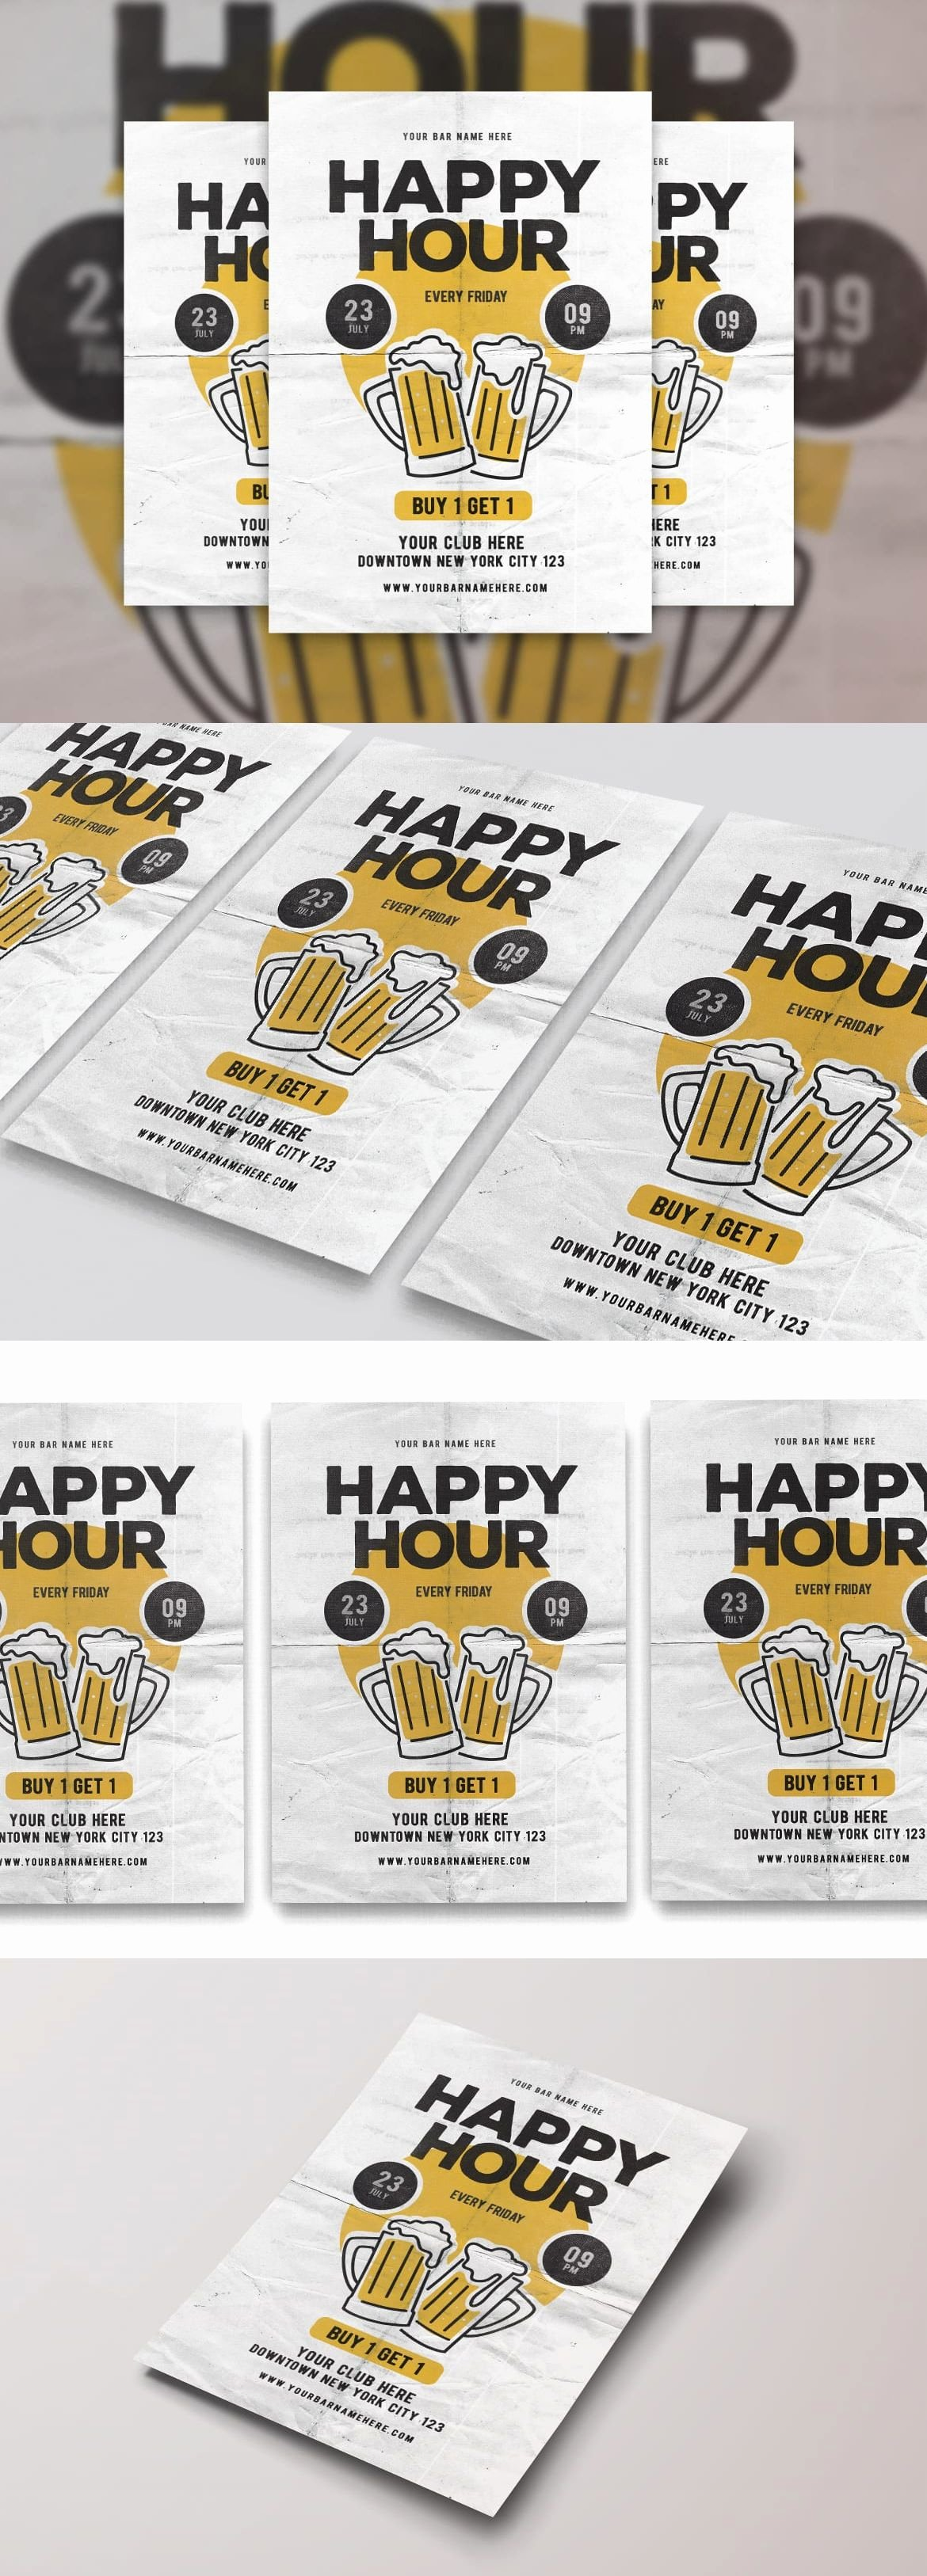 Happy Hour Menu Template Unique Happy Hour Flyer Design Template Psd Flyer Templates